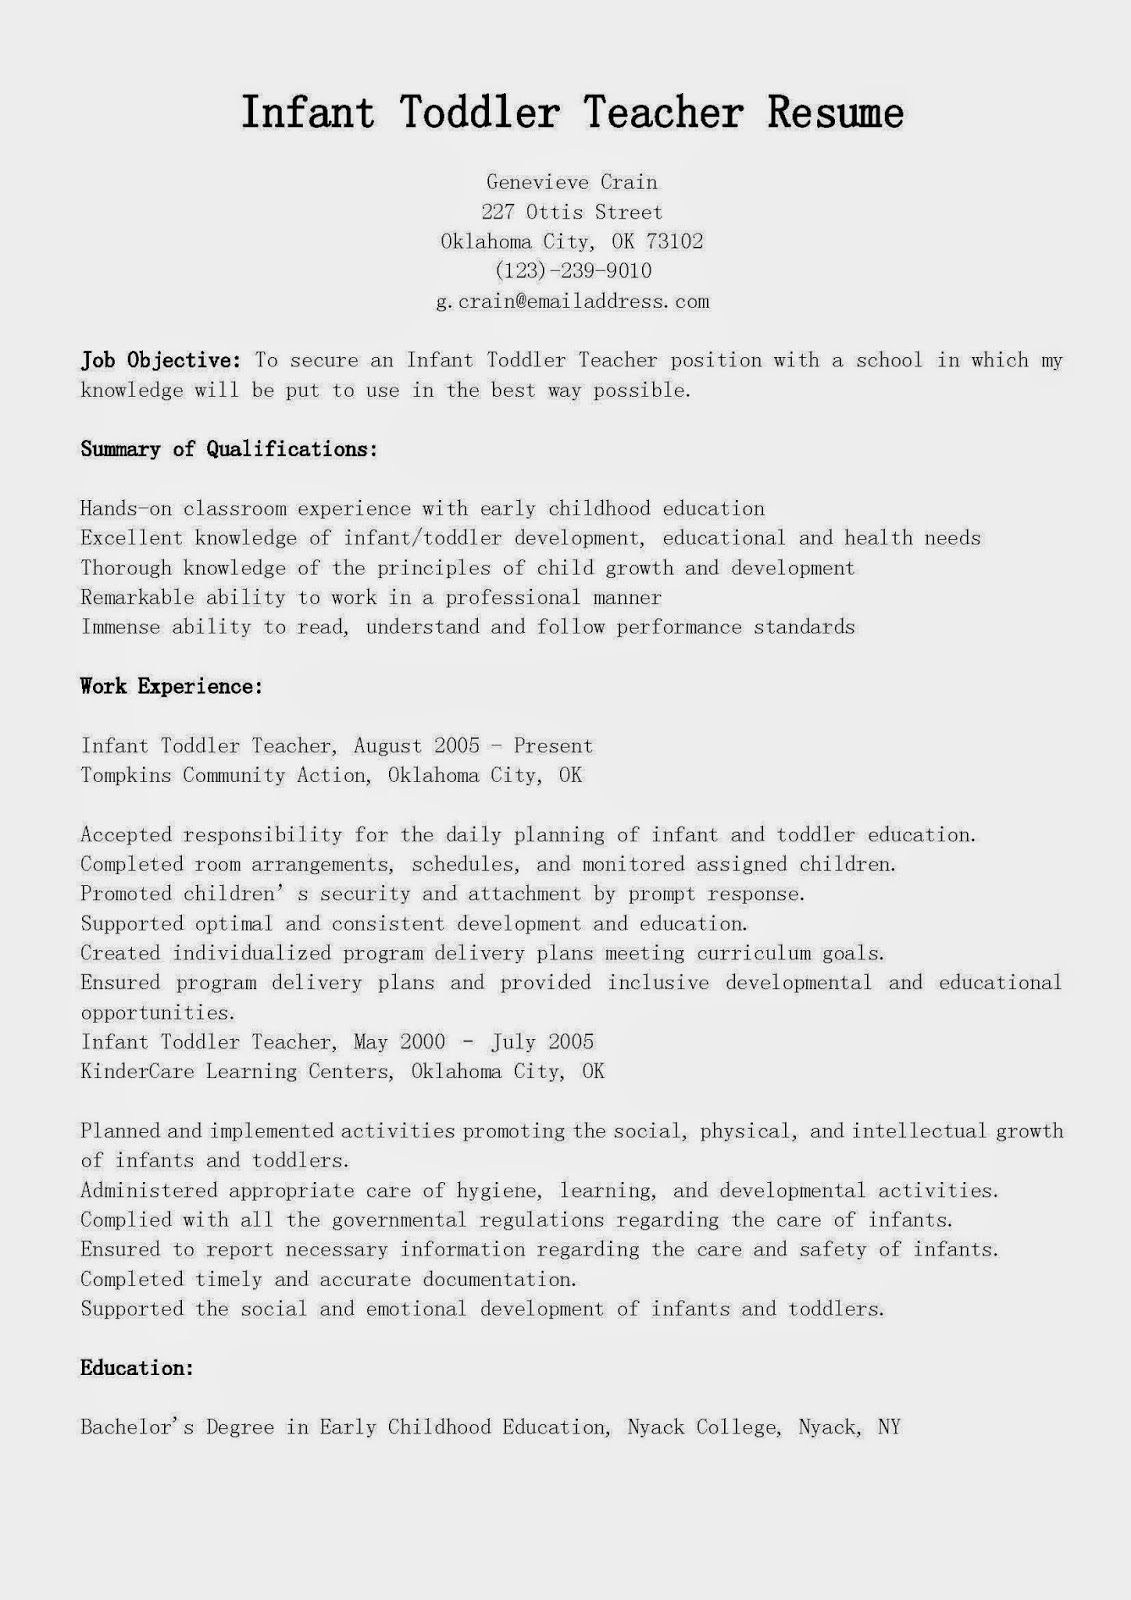 sample resume for toddler teacher resume samples infant toddler teacher resume sample